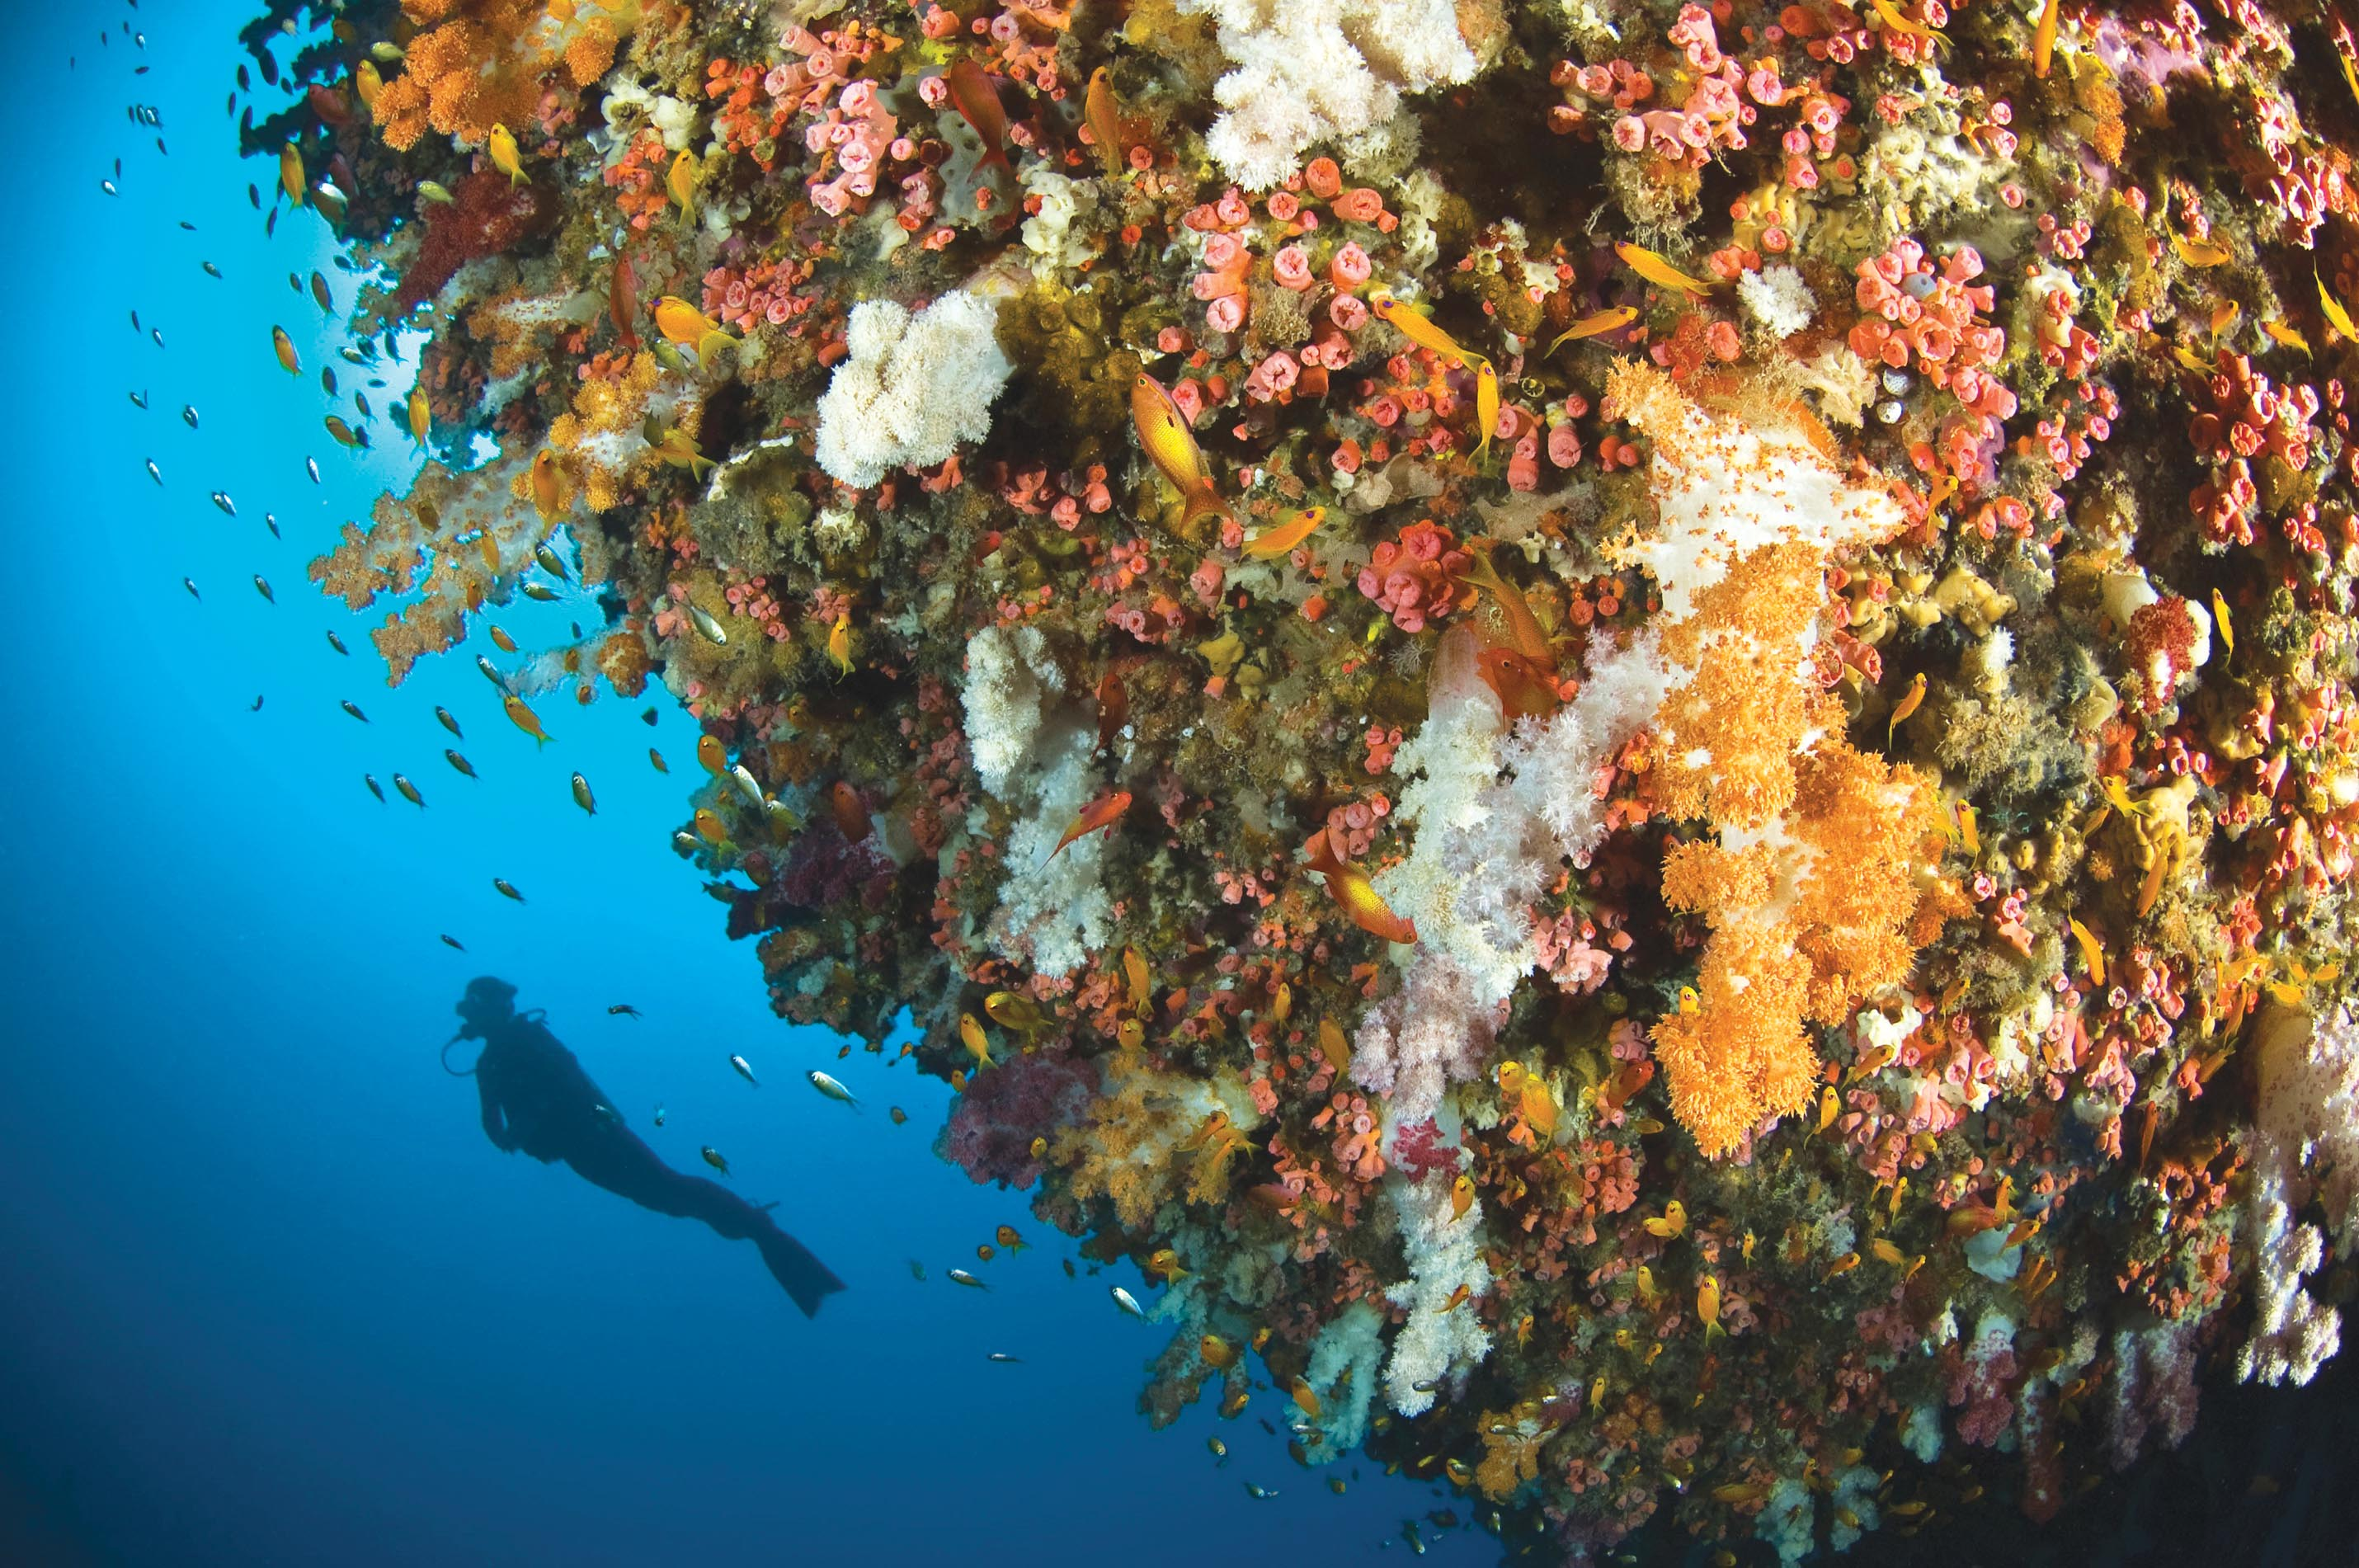 Diving the coral reefs of the southern hemisphere for stunning underwater wildlife